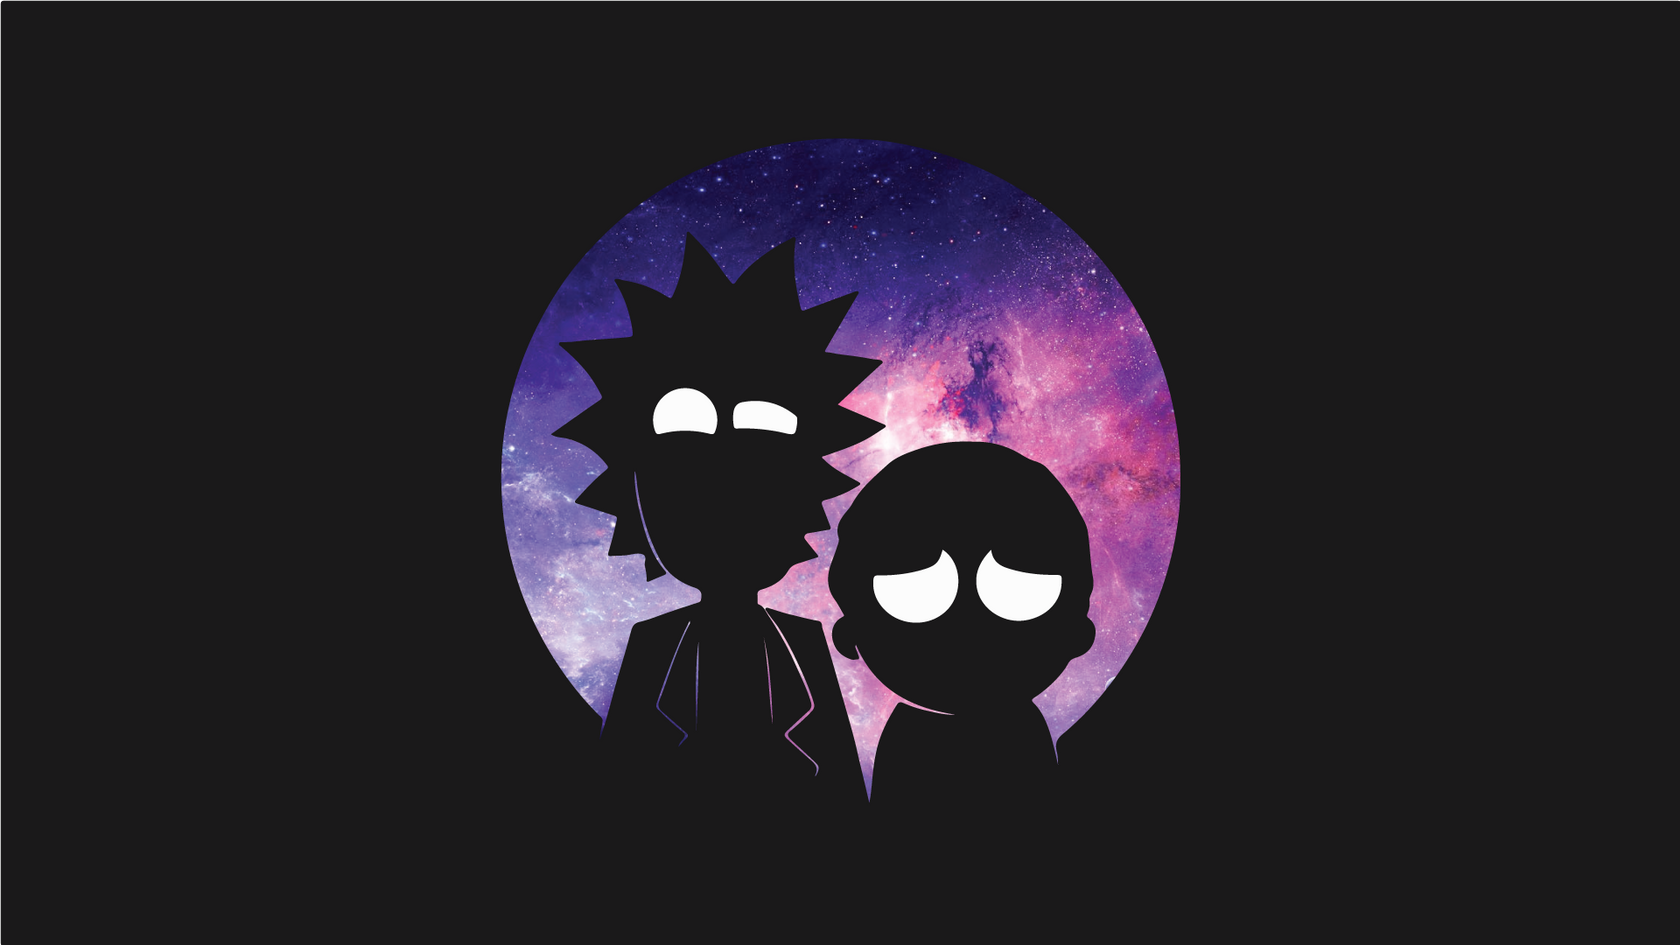 Rick And Morty Wallpaper High Definition Desktop Wallpaper Art Rick And Morty Poster Computer Wallpaper Desktop Wallpapers